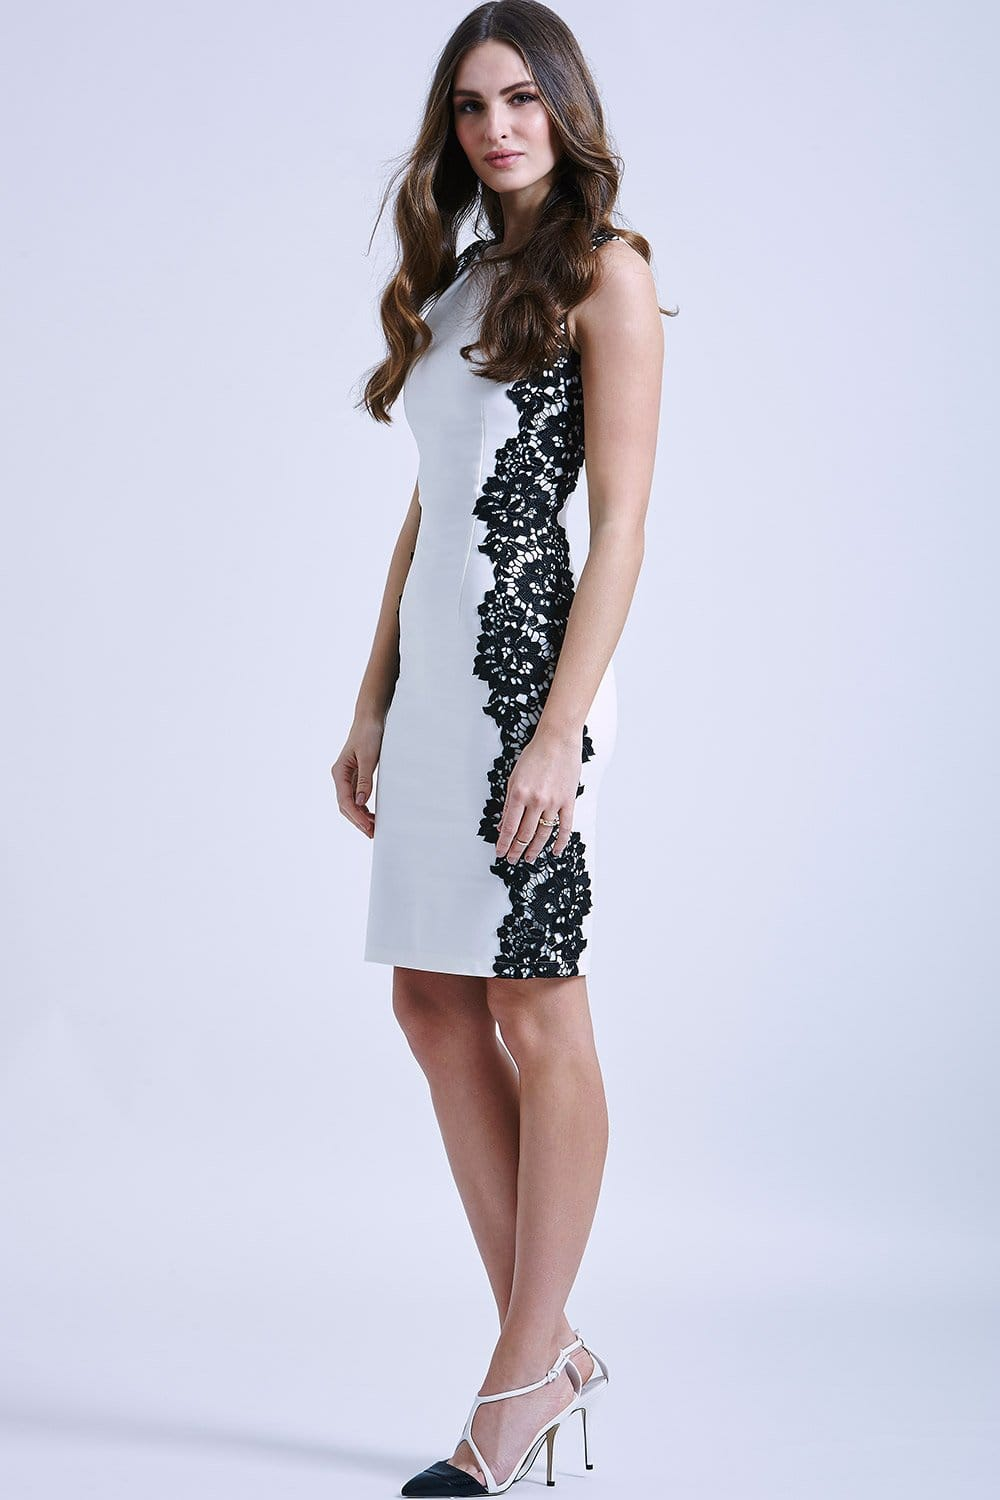 White and Black Sleeveless Lace Dress